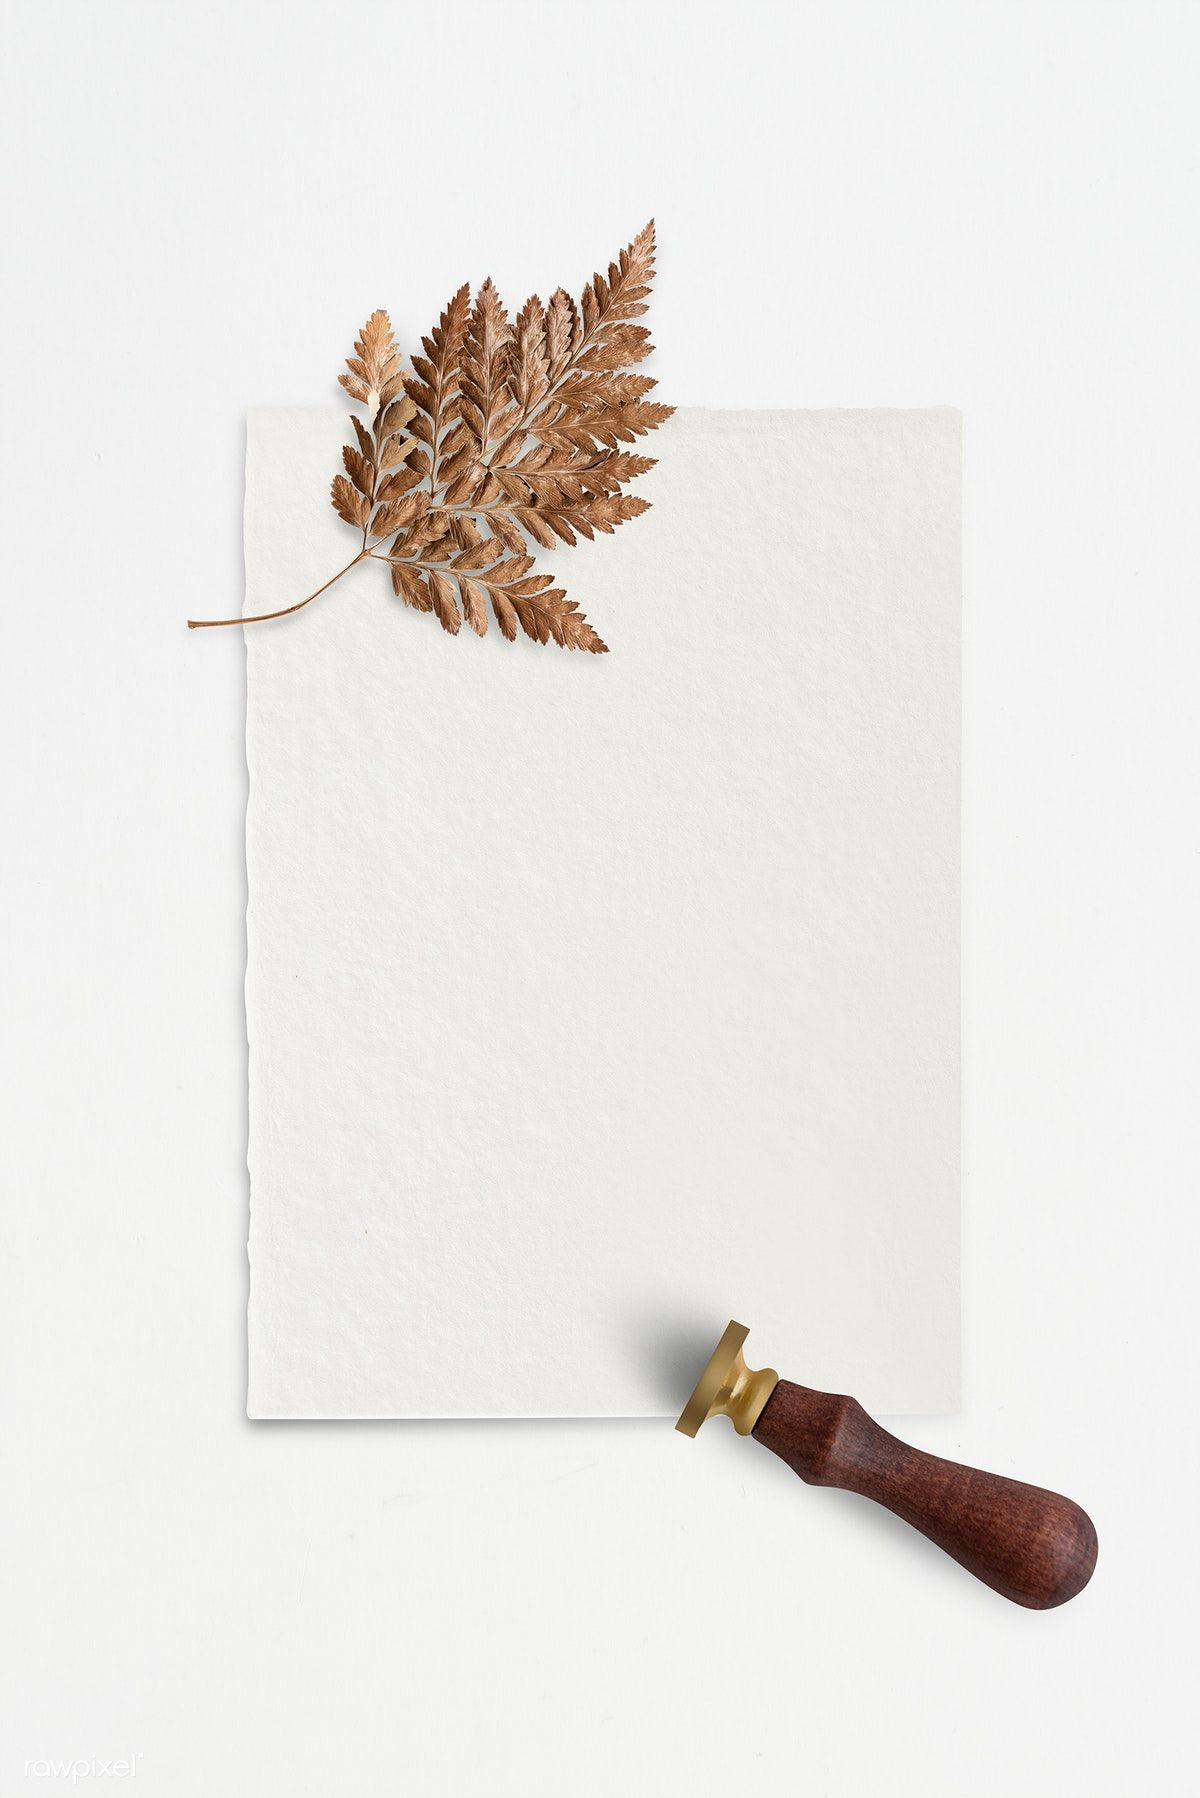 Download Premium Psd Of Dried Brown Leaf On White Paper With A Wax Seal Wax Seals Flower Phone Wallpaper Paper Background Texture